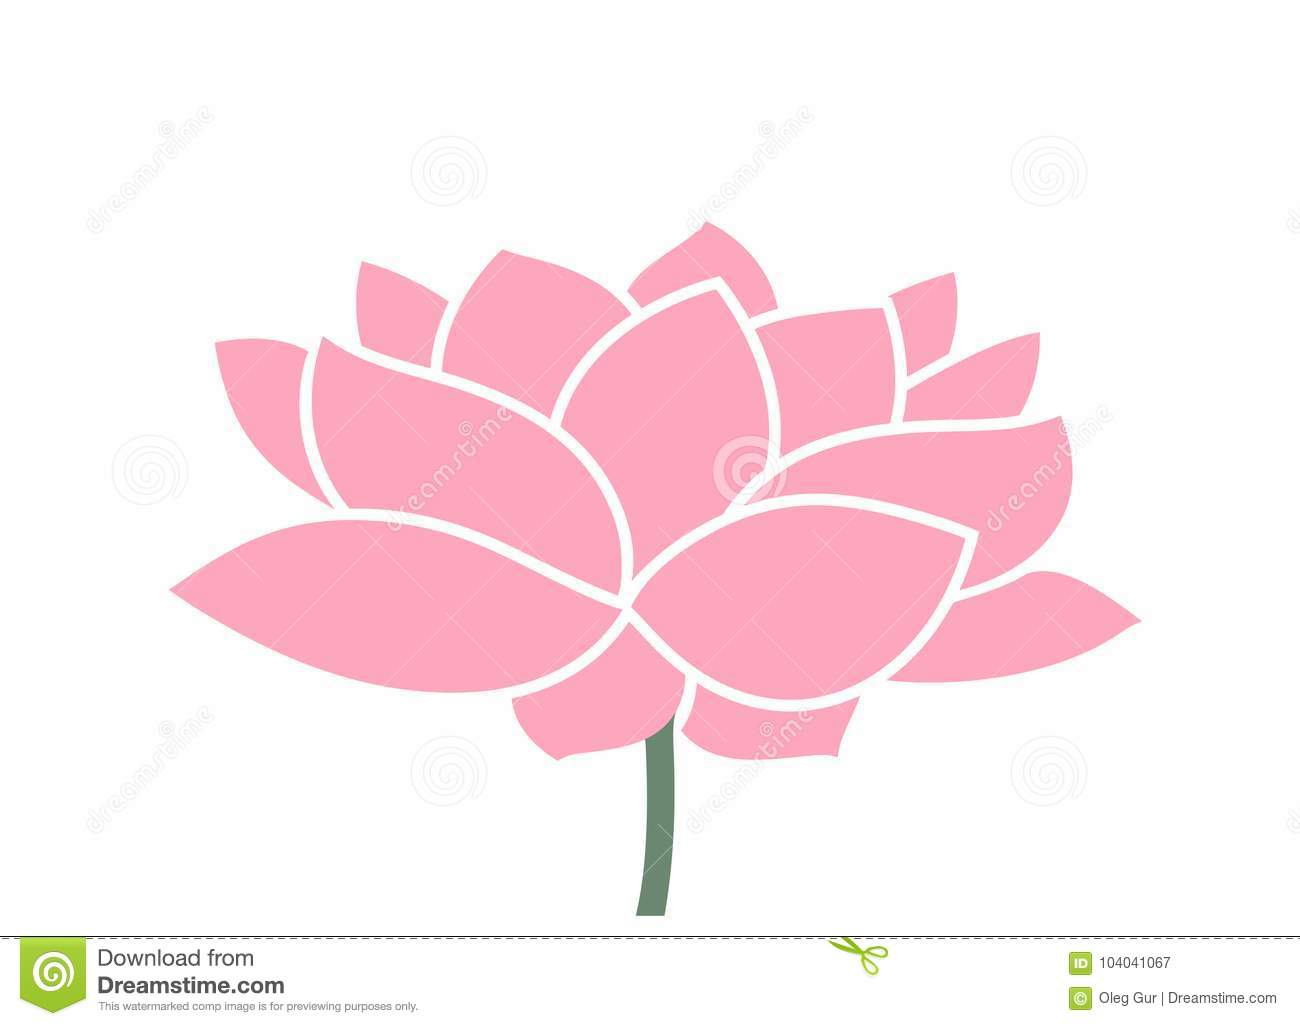 Lotus flower logo isolated lotus on white background stock vector lotus flower logo isolated lotus on white background eps 10 vector illustration izmirmasajfo